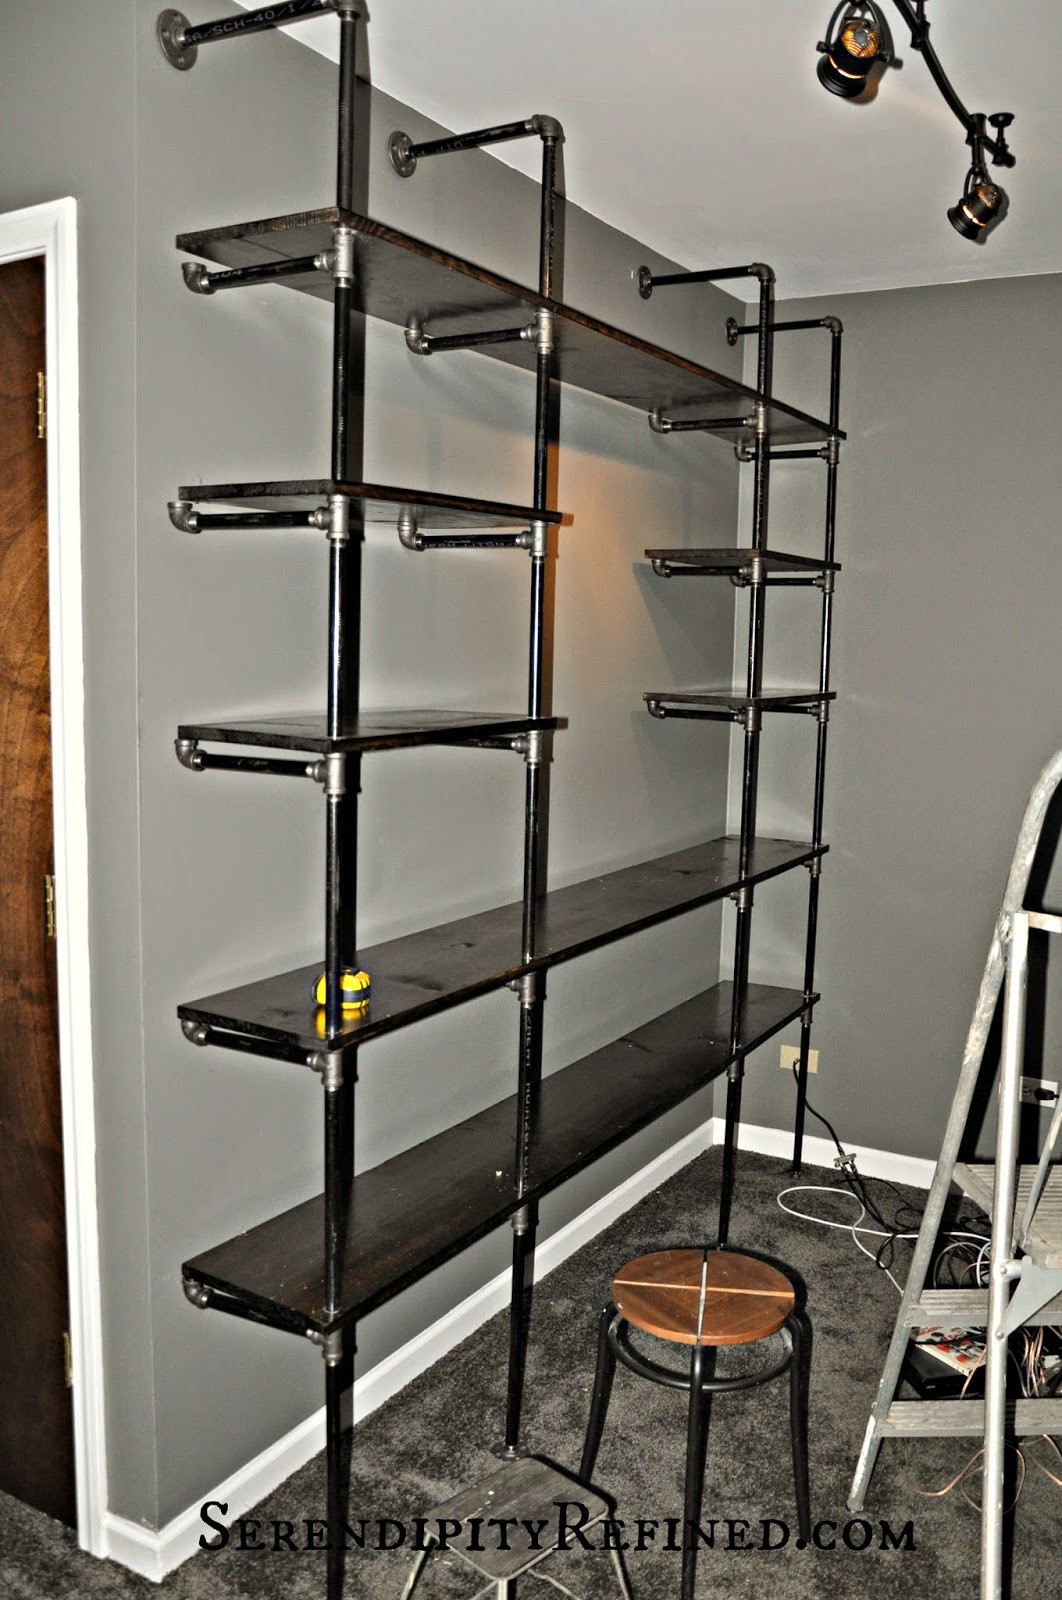 Best ideas about DIY Pipe Shelves . Save or Pin Serendipity Refined Blog DIY Industrial Pipe Shelves for Now.